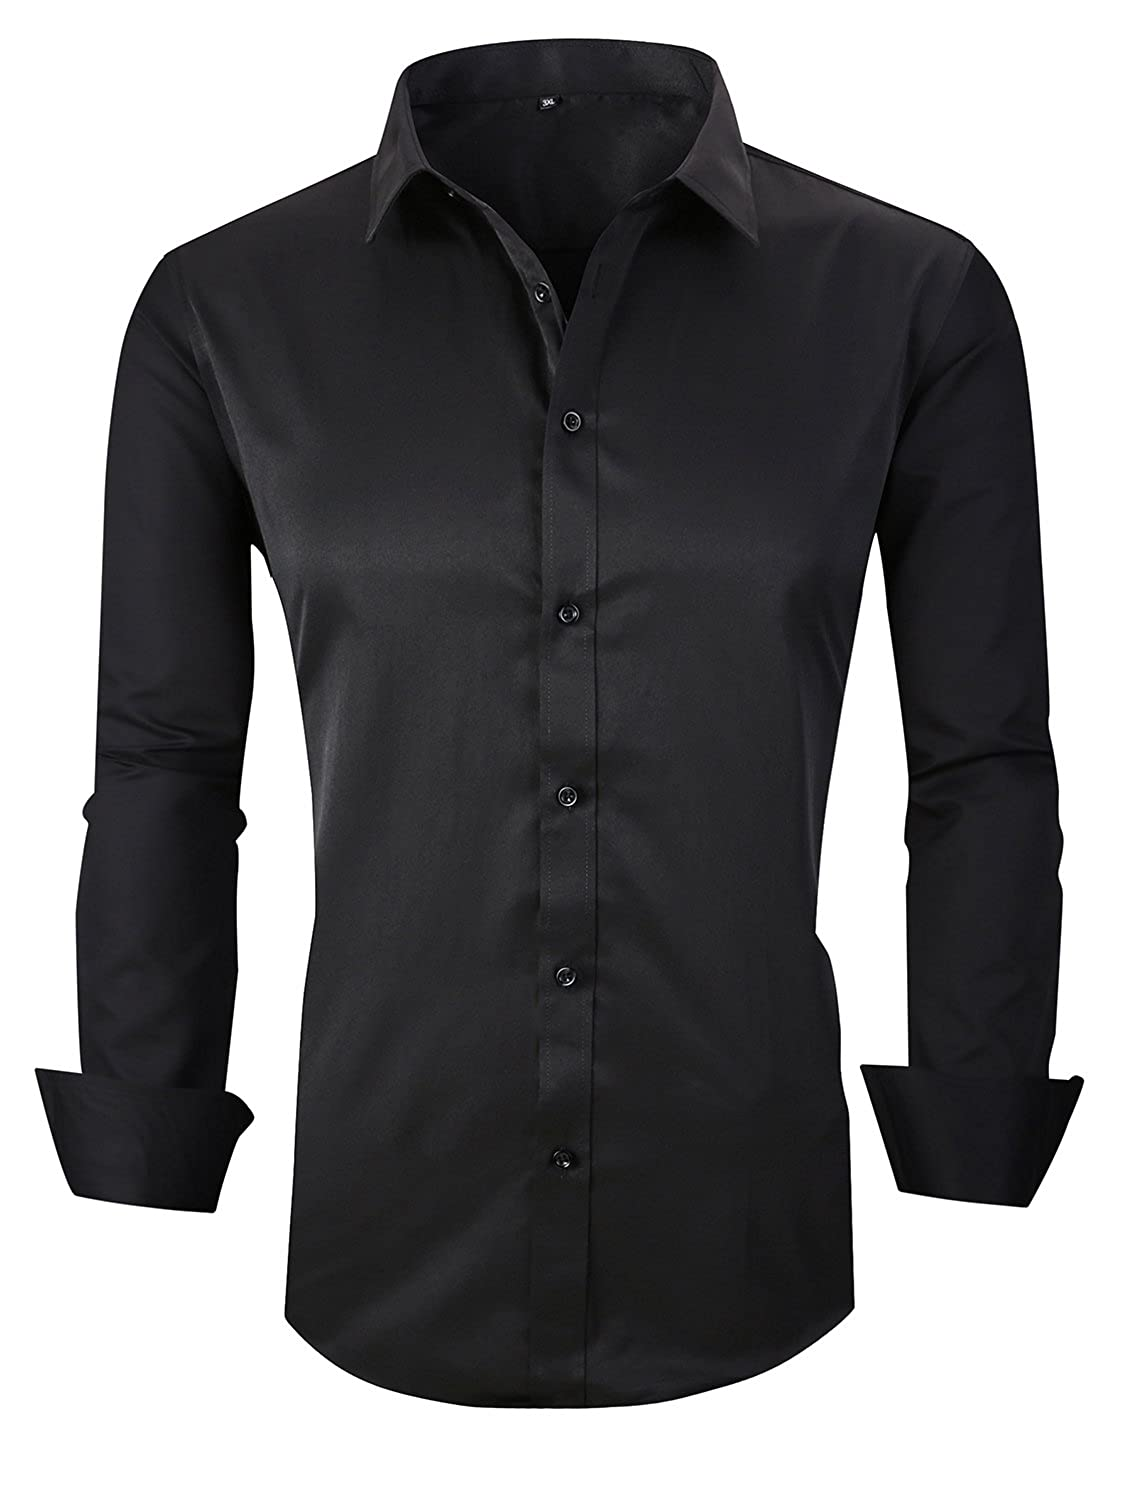 JHVYF Mens Long Sleeve Button Down Dress Shirts Business Casual Slim Fit Shirt